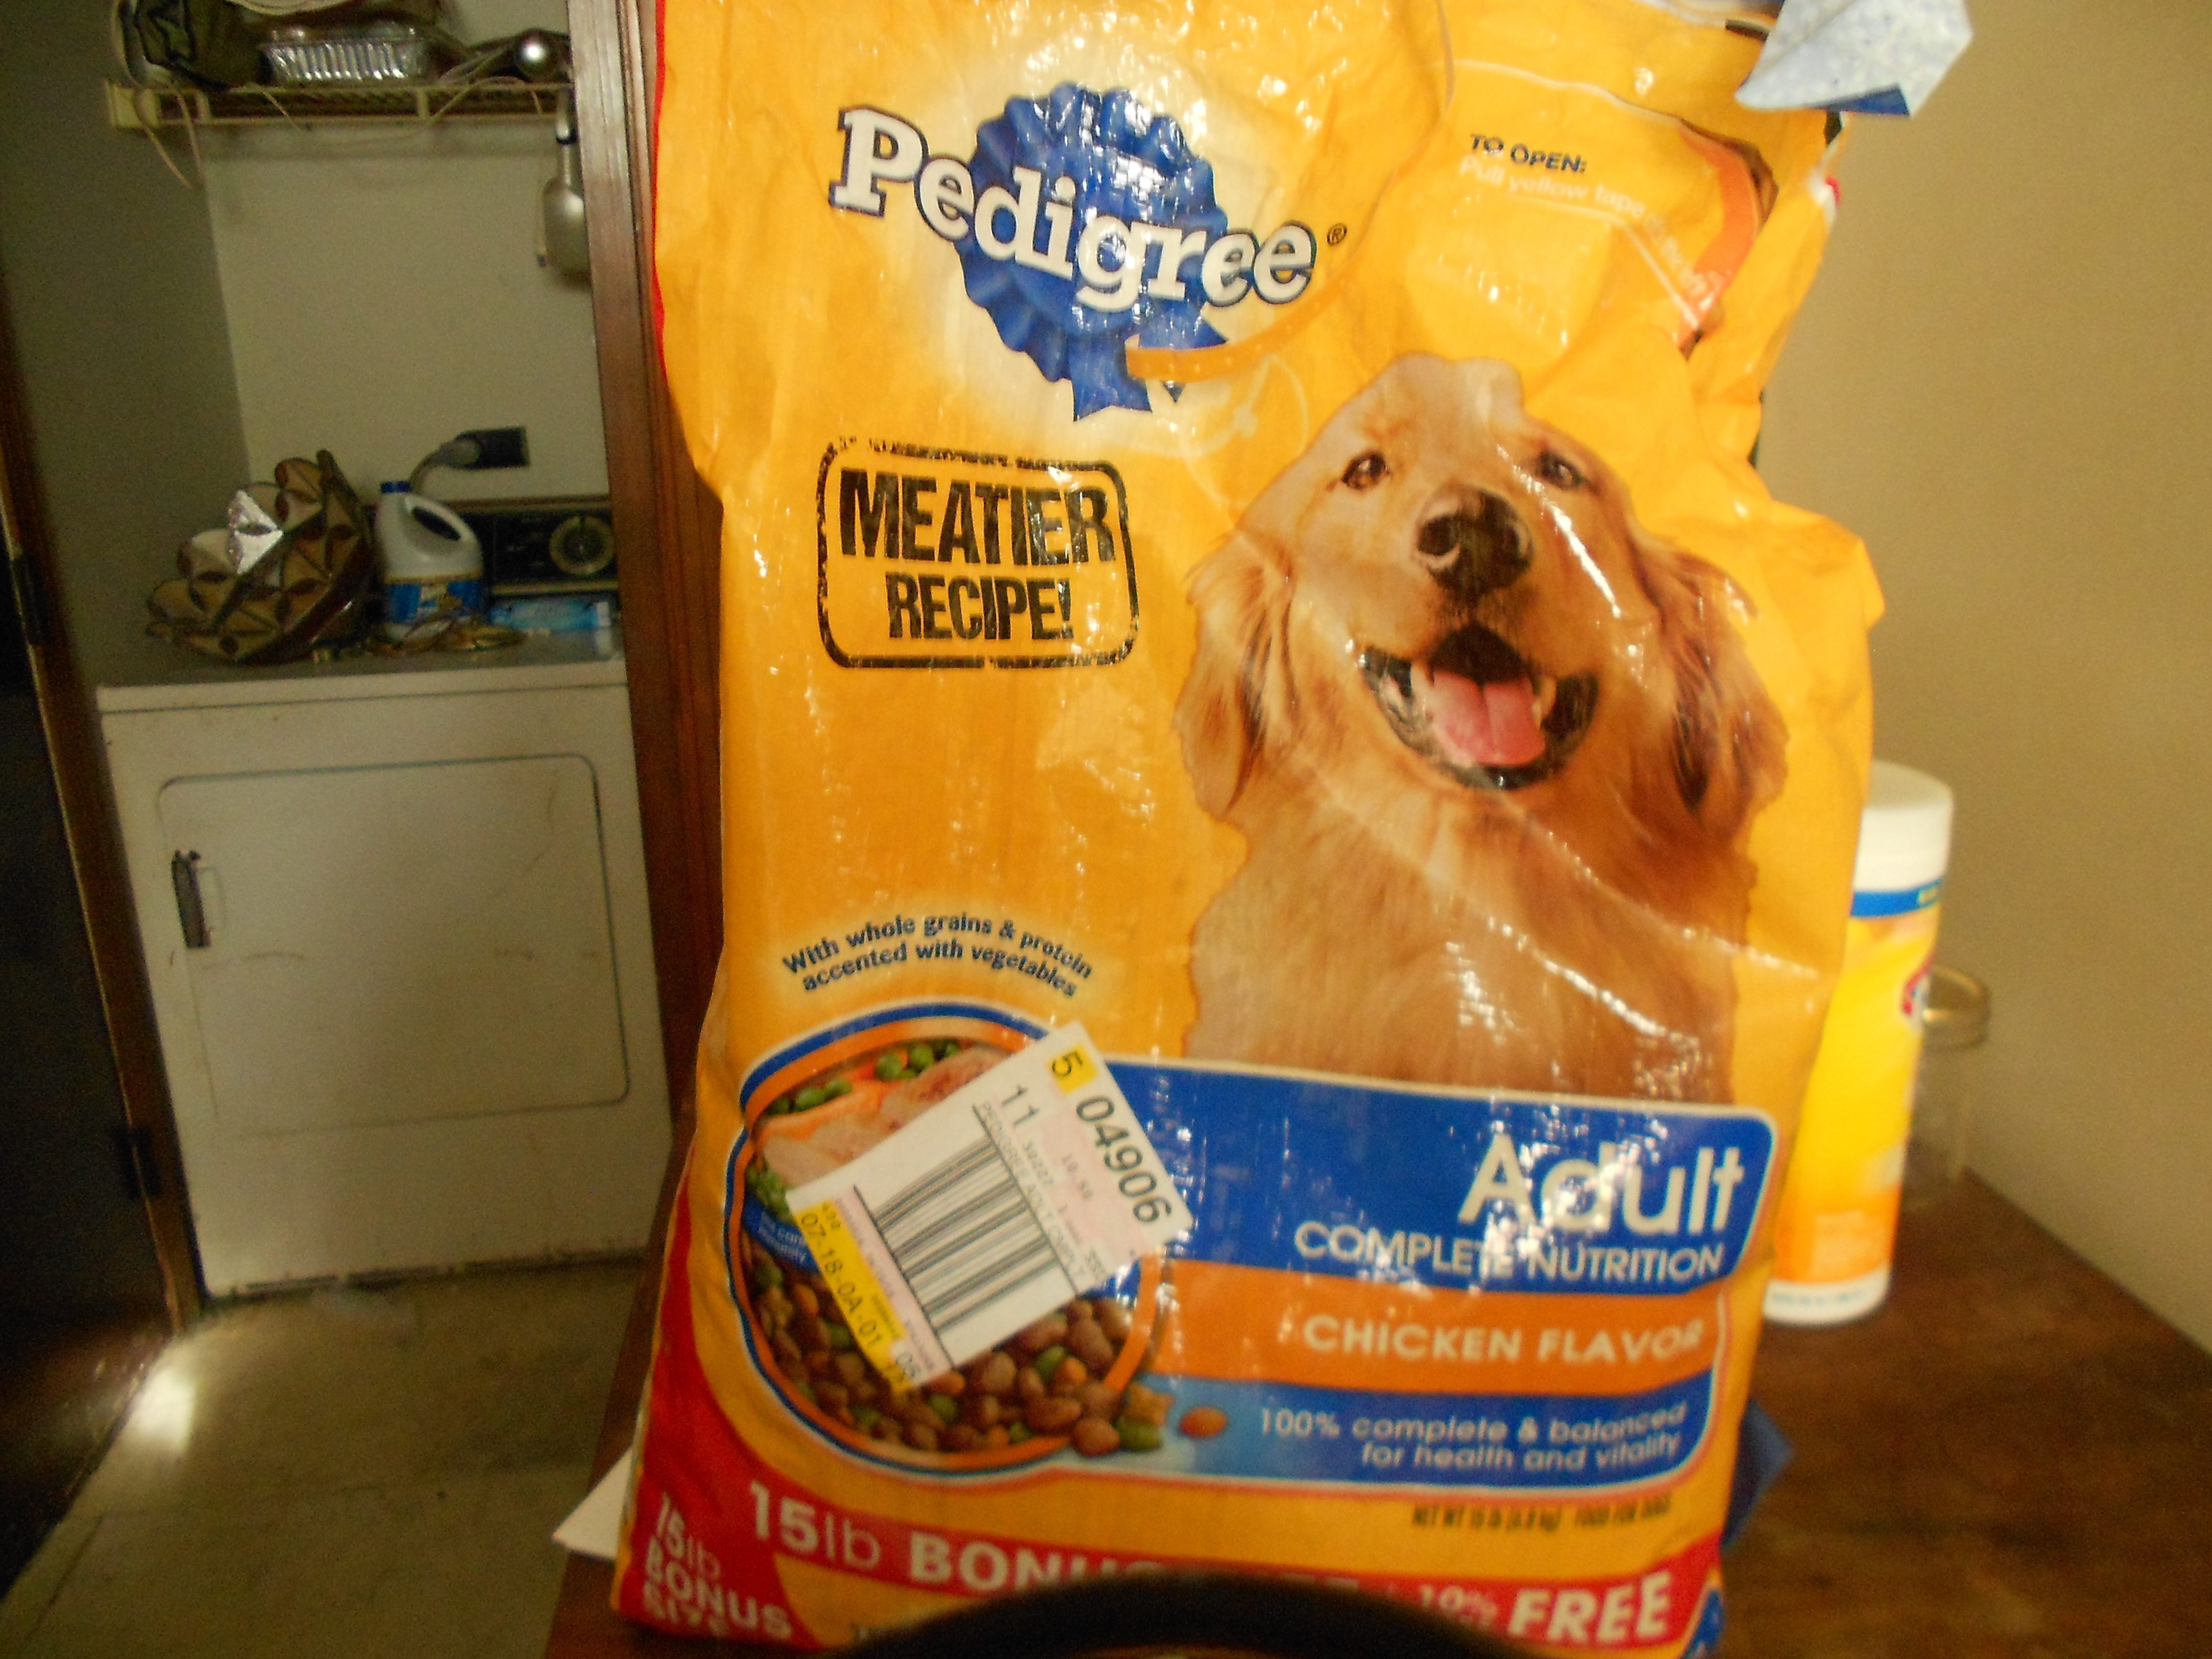 Apr 02, · Put the Bag in a Can. Although keeping the food in the original bag is important, that doesn't mean you can't place the entire bag in a storage container. For small bags of food, a kitchen canister works great. For larger bags, a plastic or metal trash can is fine.